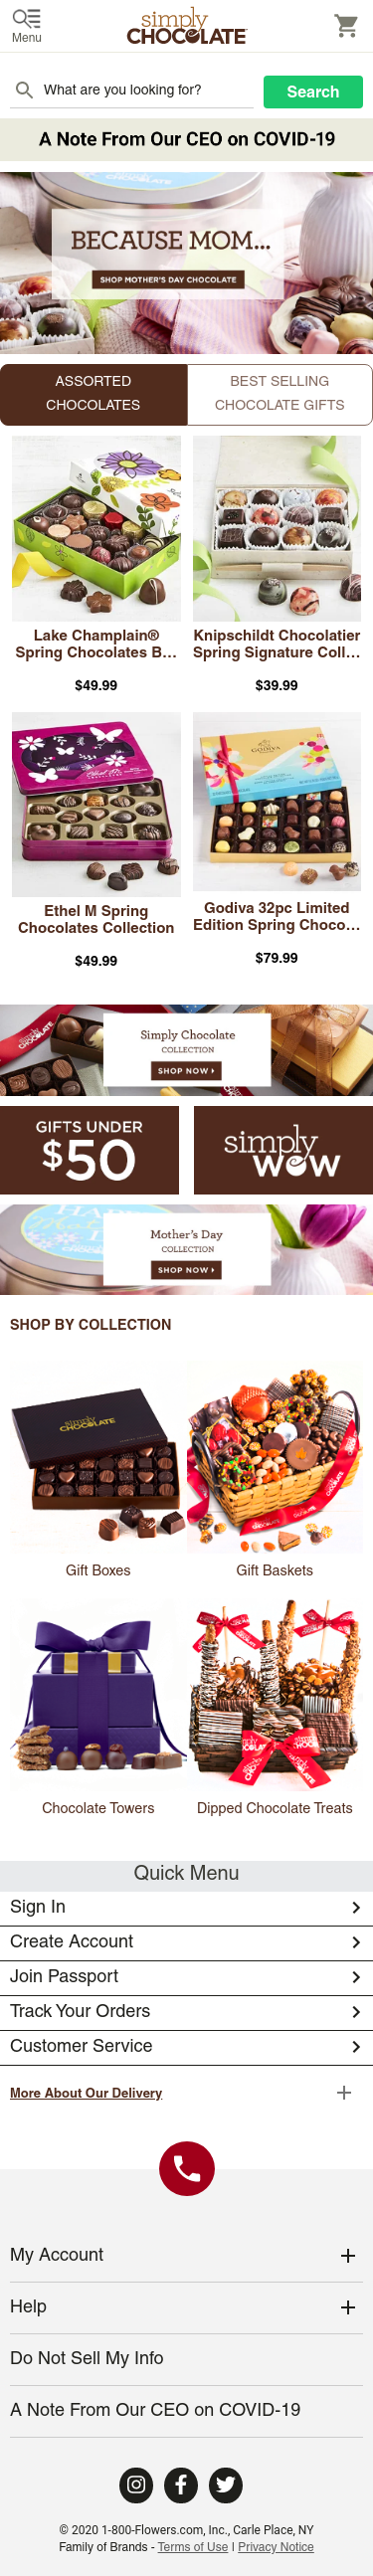 Simply Chocolate Coupon